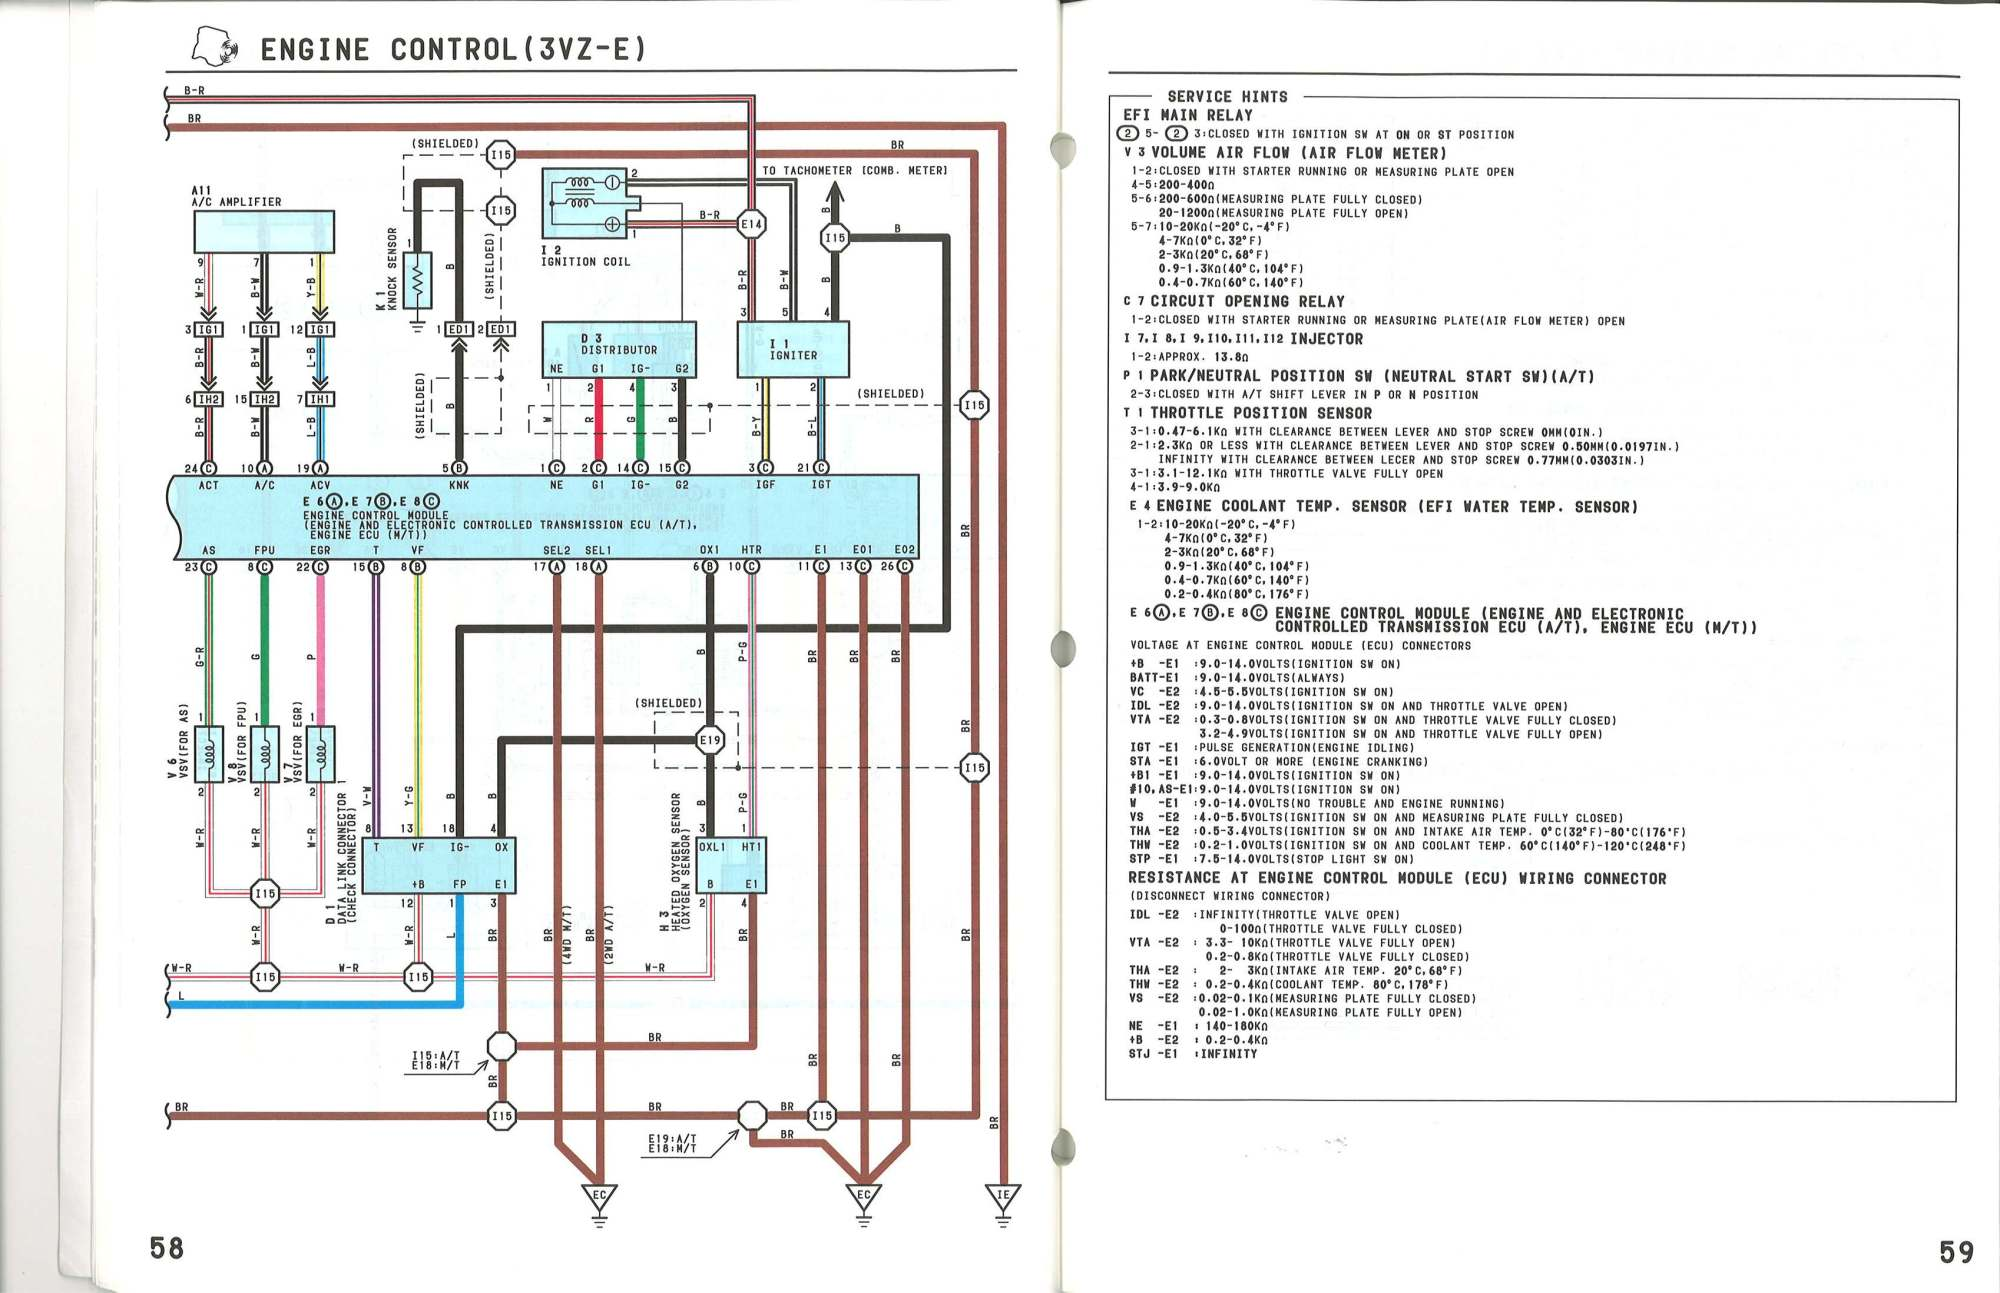 hight resolution of toyota ecm wiring diagram wiring diagram inside 3vze ecu pinout yotatech forums toyota ecm wiring diagram